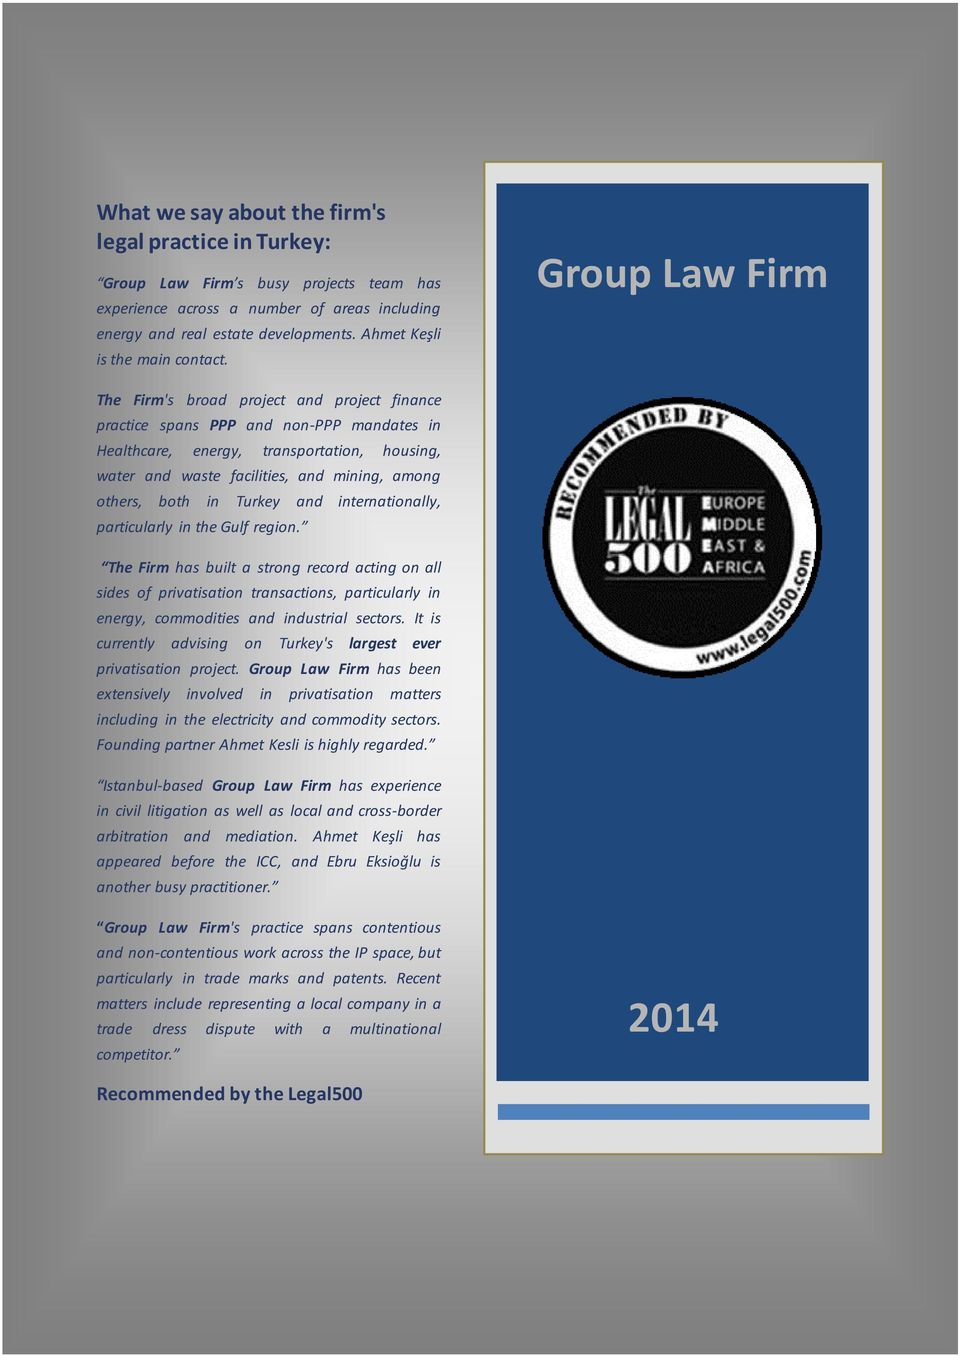 Group Law Firm The Firm's broad project and project finance practice spans PPP and non-ppp mandates in Healthcare, energy, transportation, housing, water and waste facilities, and mining, among